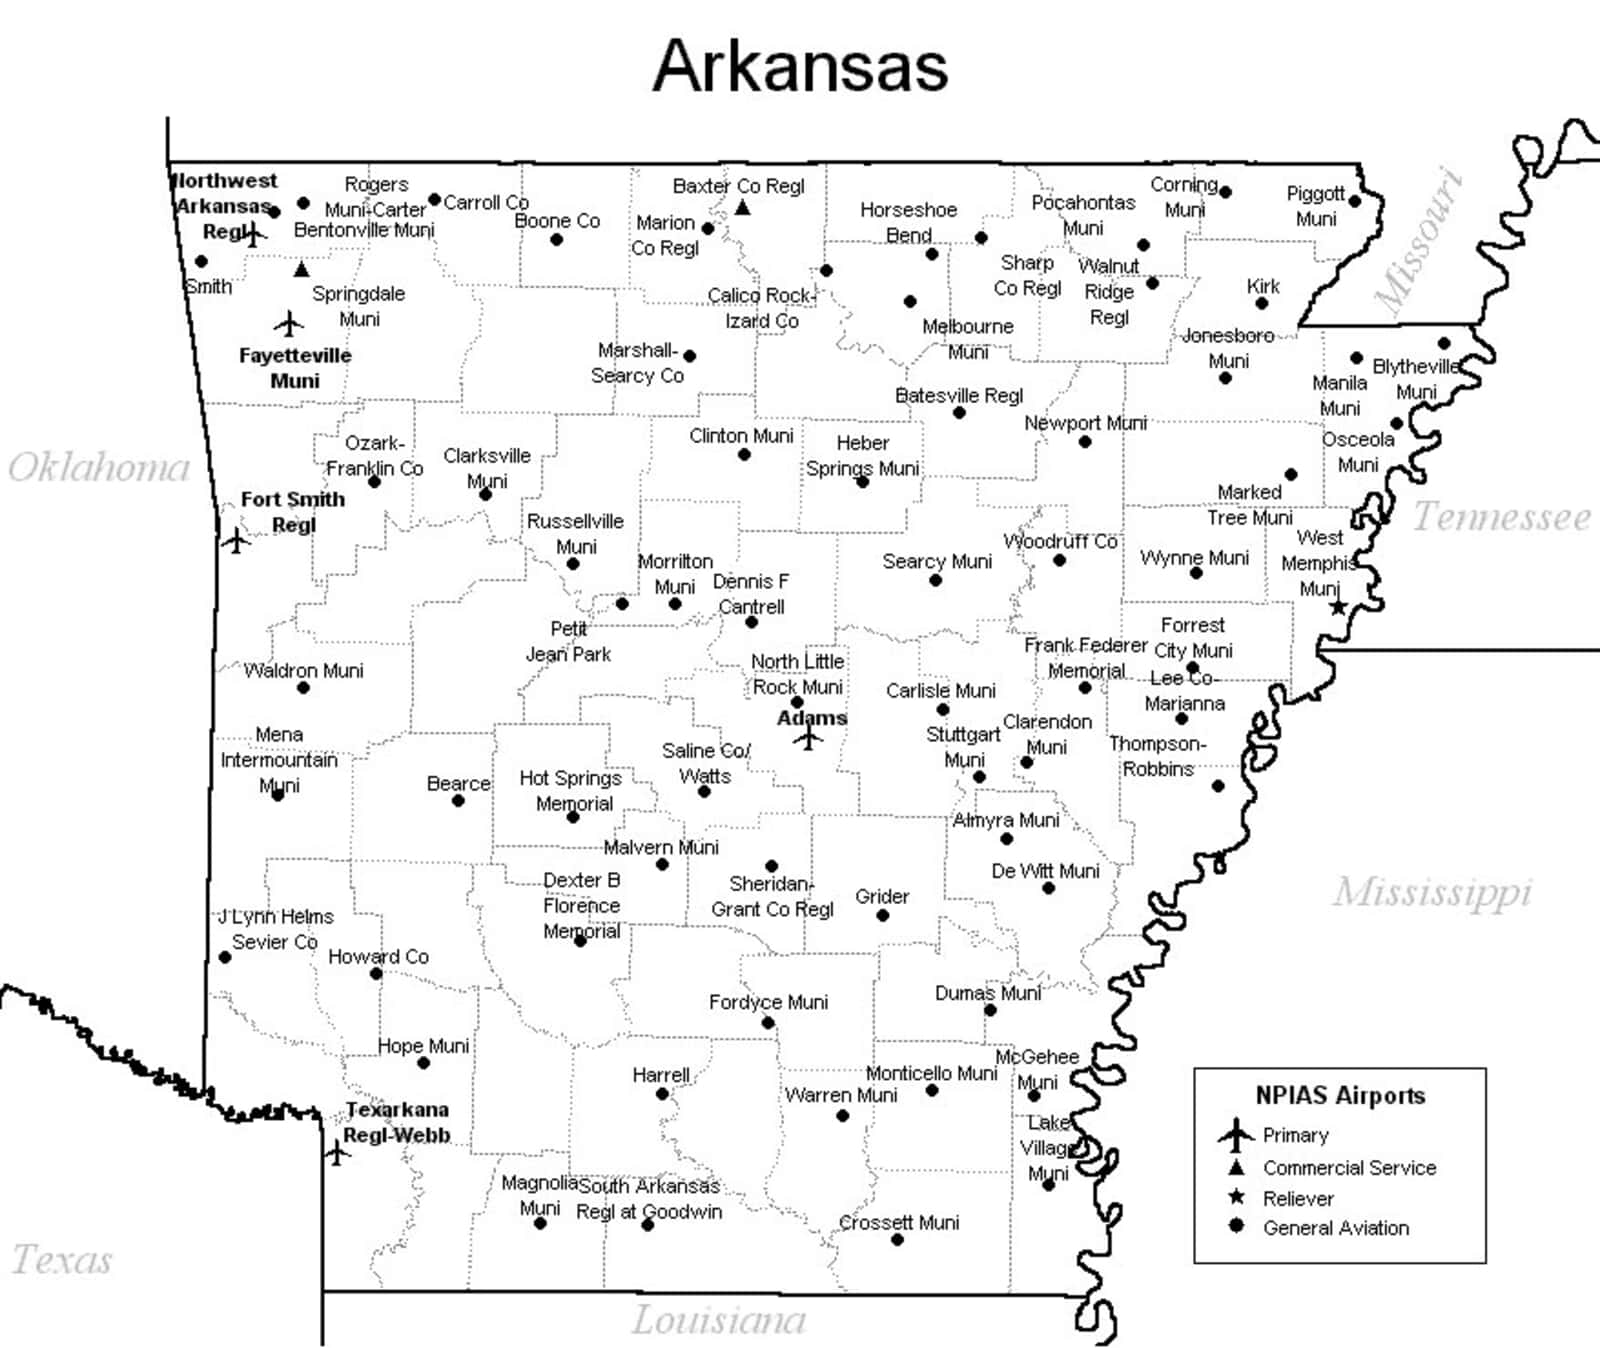 Map Of Arkansas Airports Arkansas Airport Map   Arkansas Airports Map Of Arkansas Airports